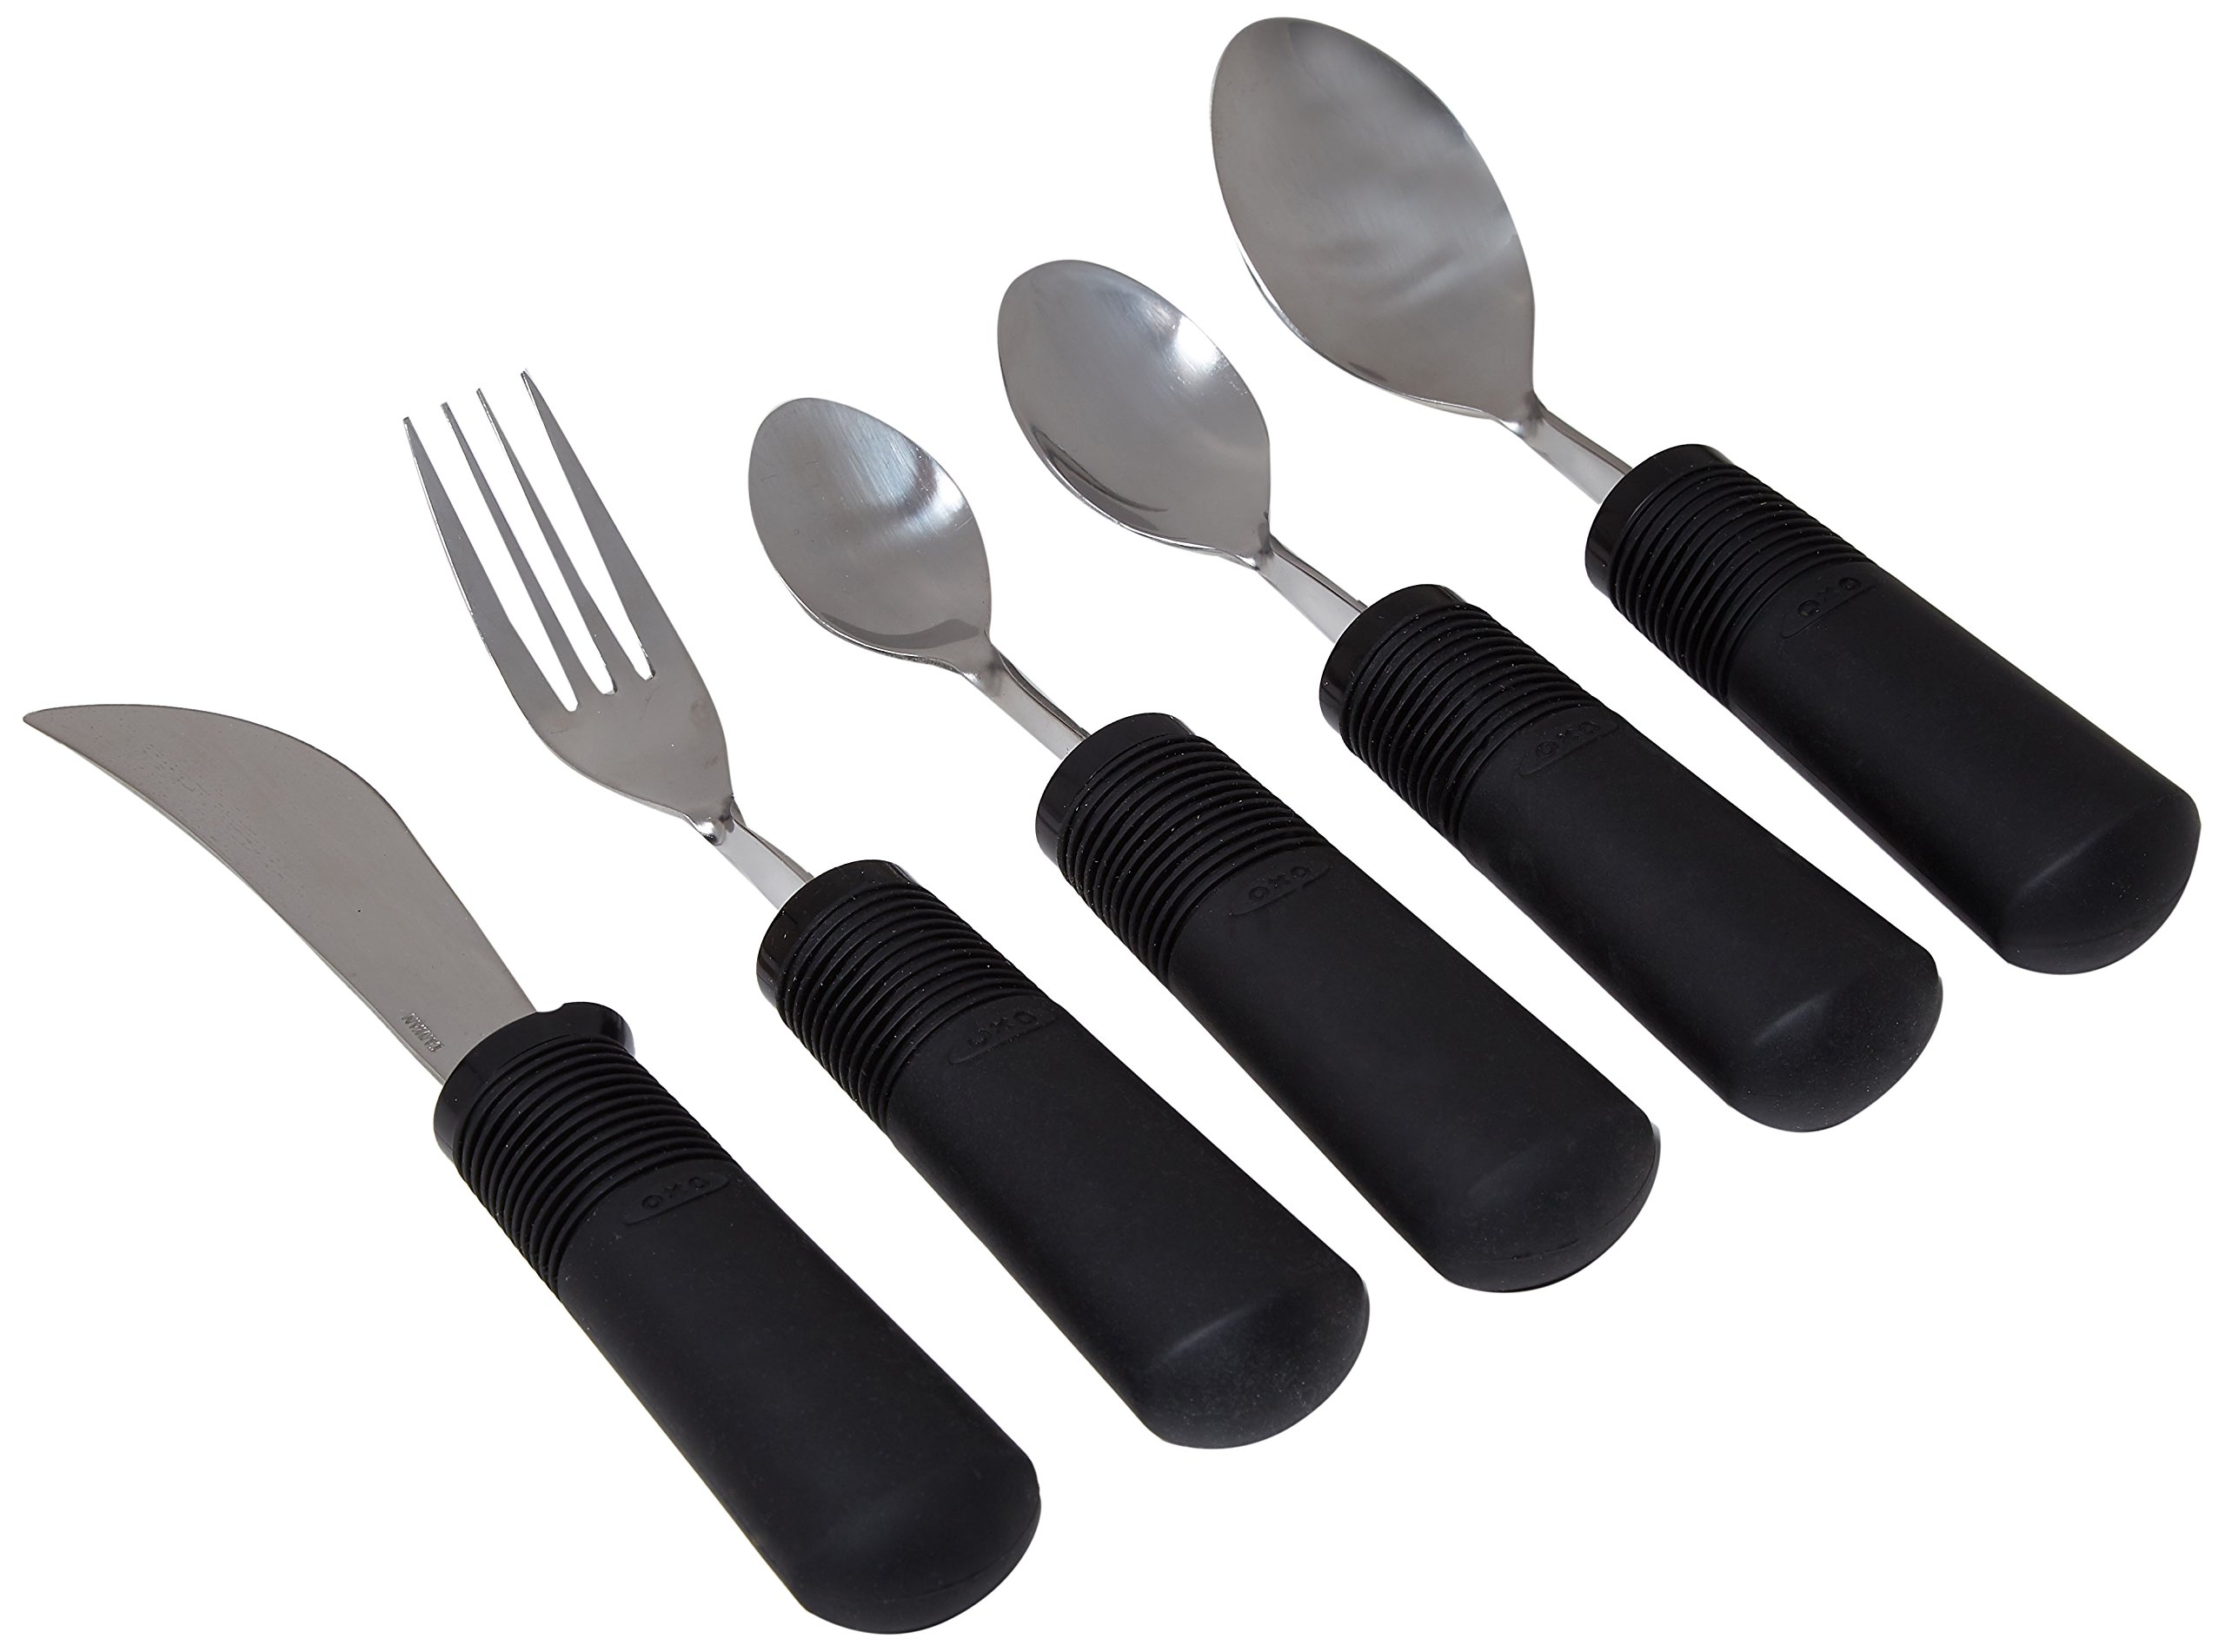 Good Grips Utensils Sample Kit